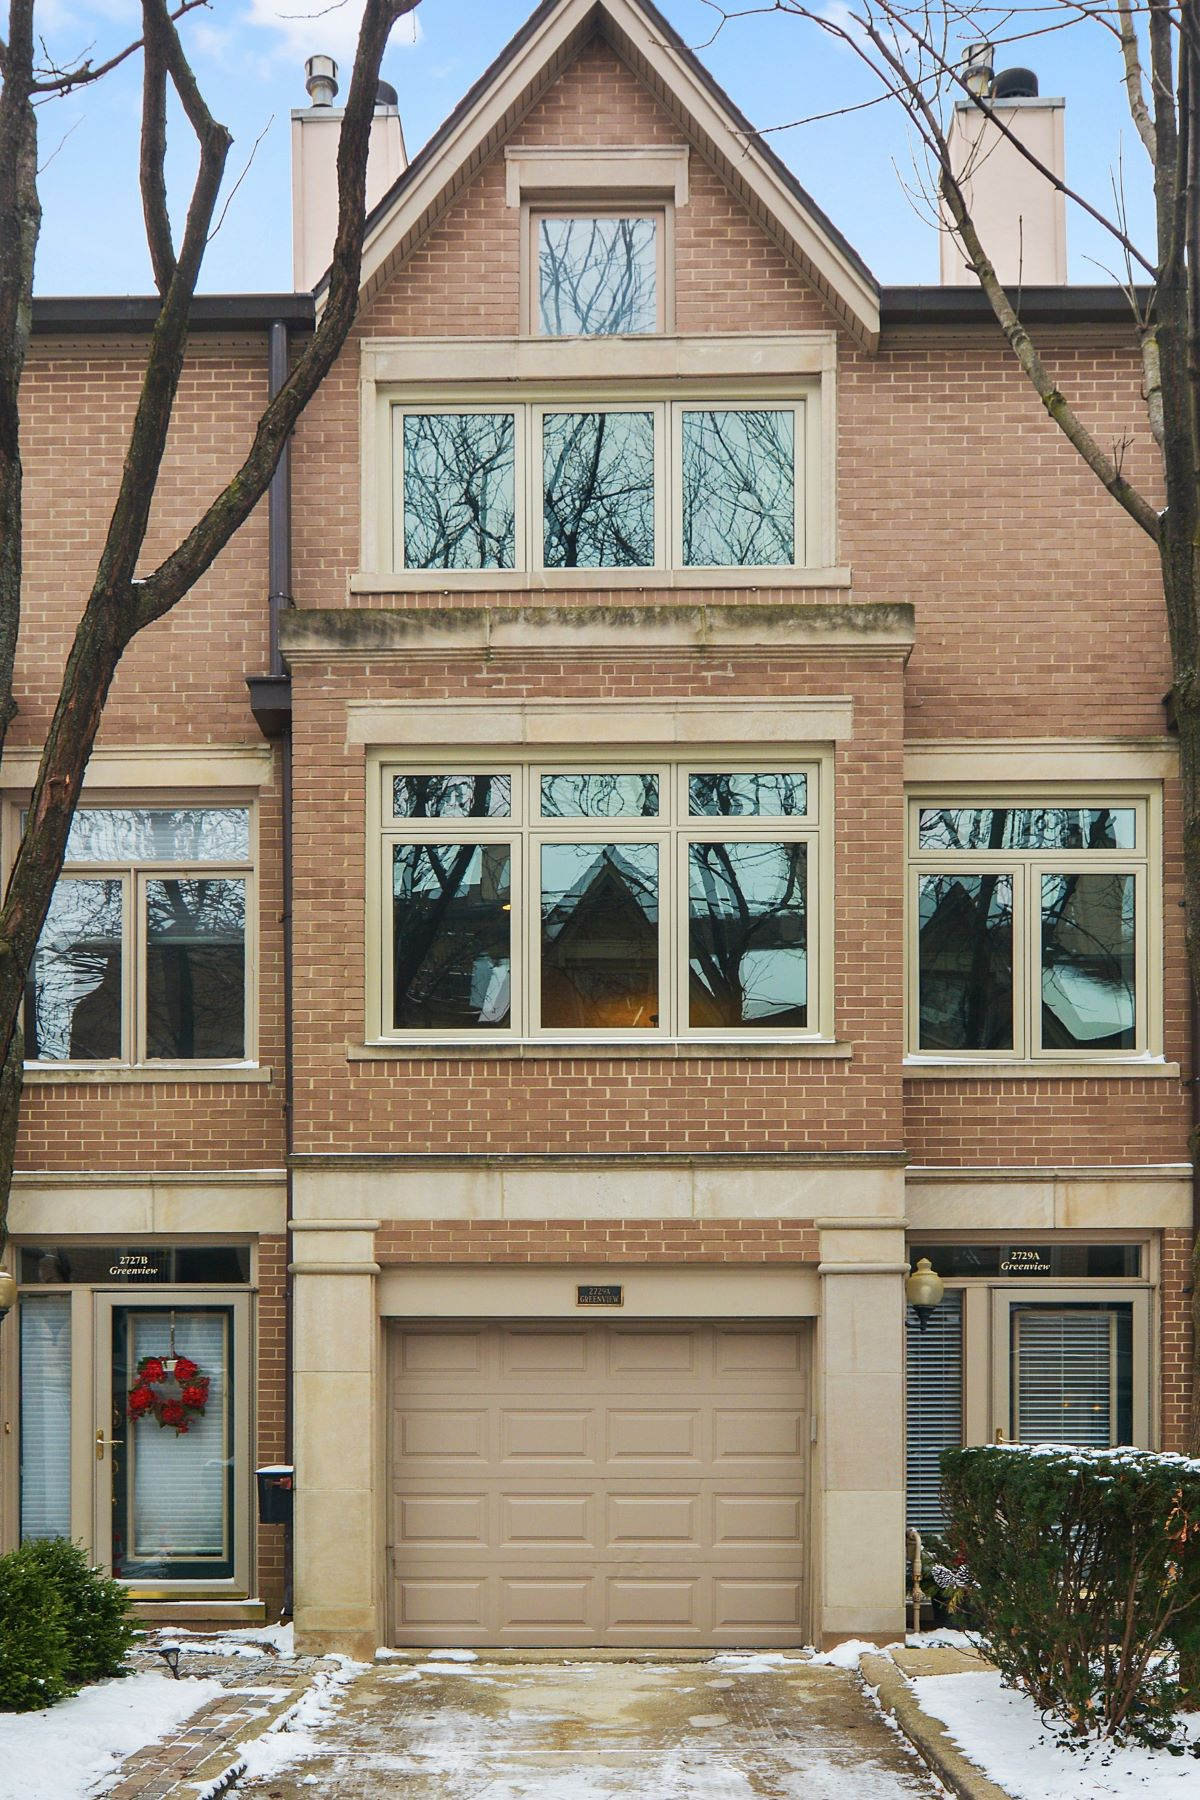 Townhouse for Sale at Park Lane Townhome in Lincoln Park 2729 N. Greenview Avenue, Unit A, Lincoln Park, Chicago, Illinois, 60614 United States